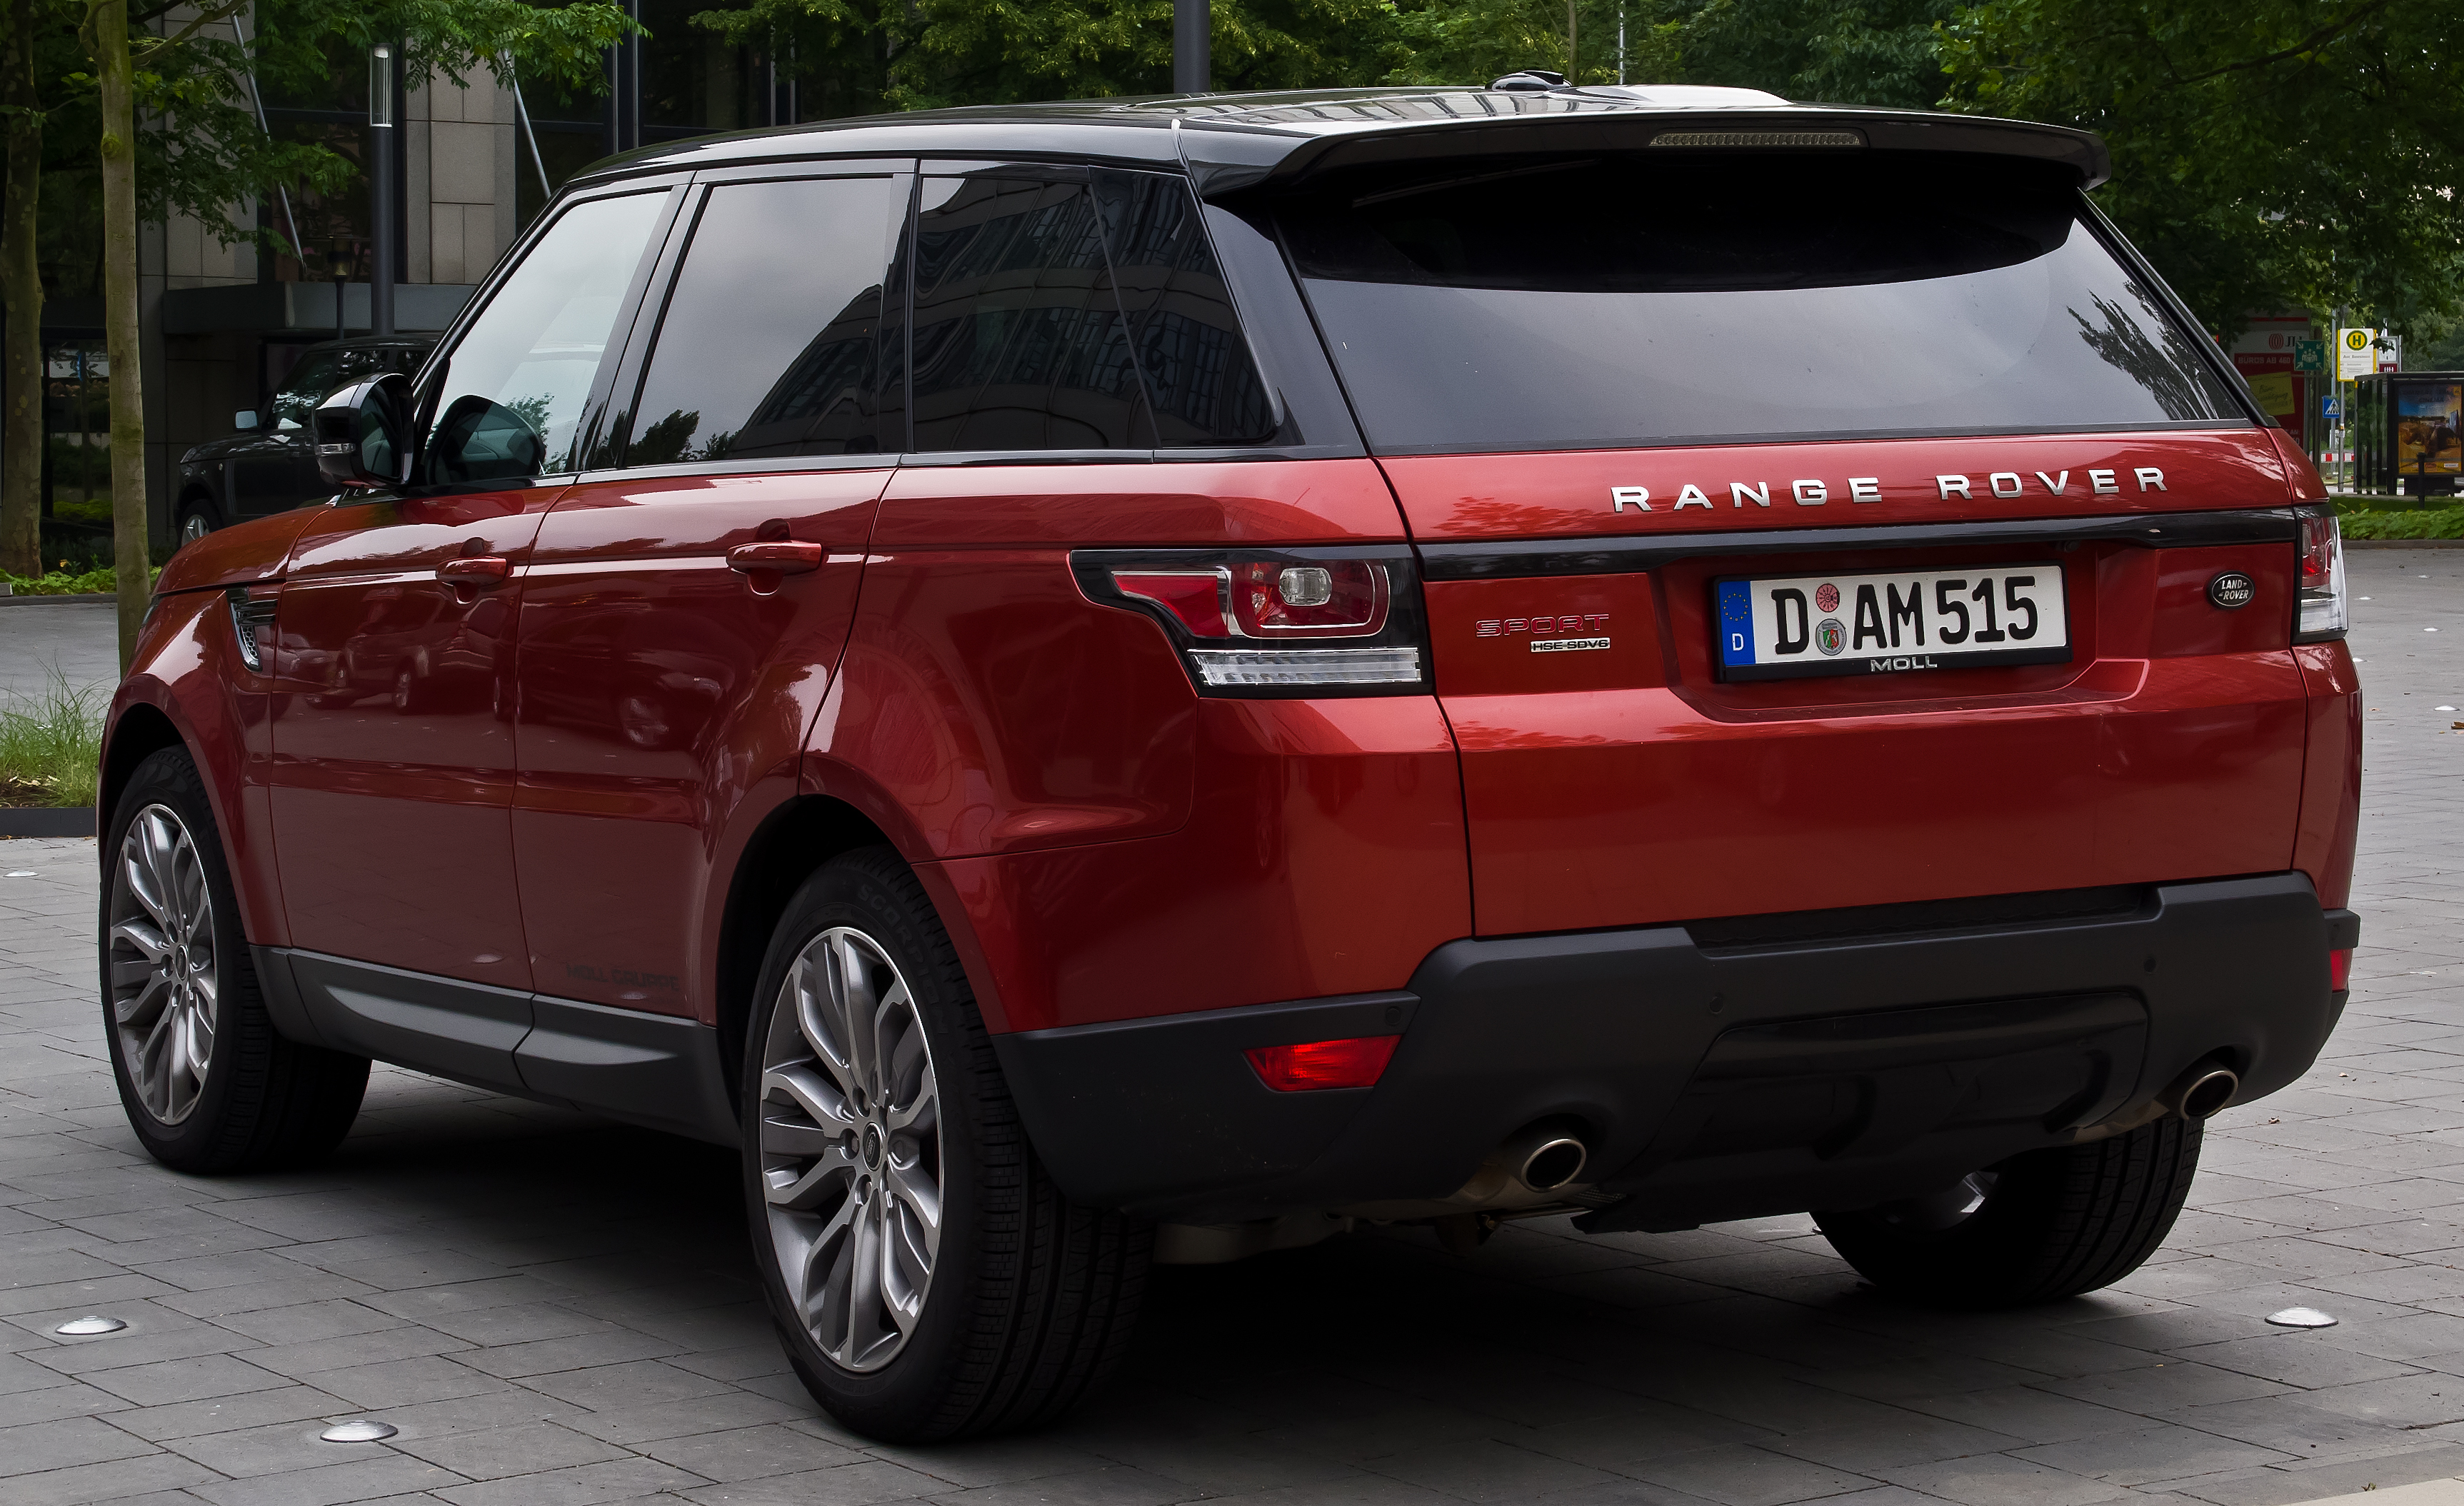 file range rover sport sdv6 hse ii heckansicht 12 juli 2014 d wikipedia. Black Bedroom Furniture Sets. Home Design Ideas